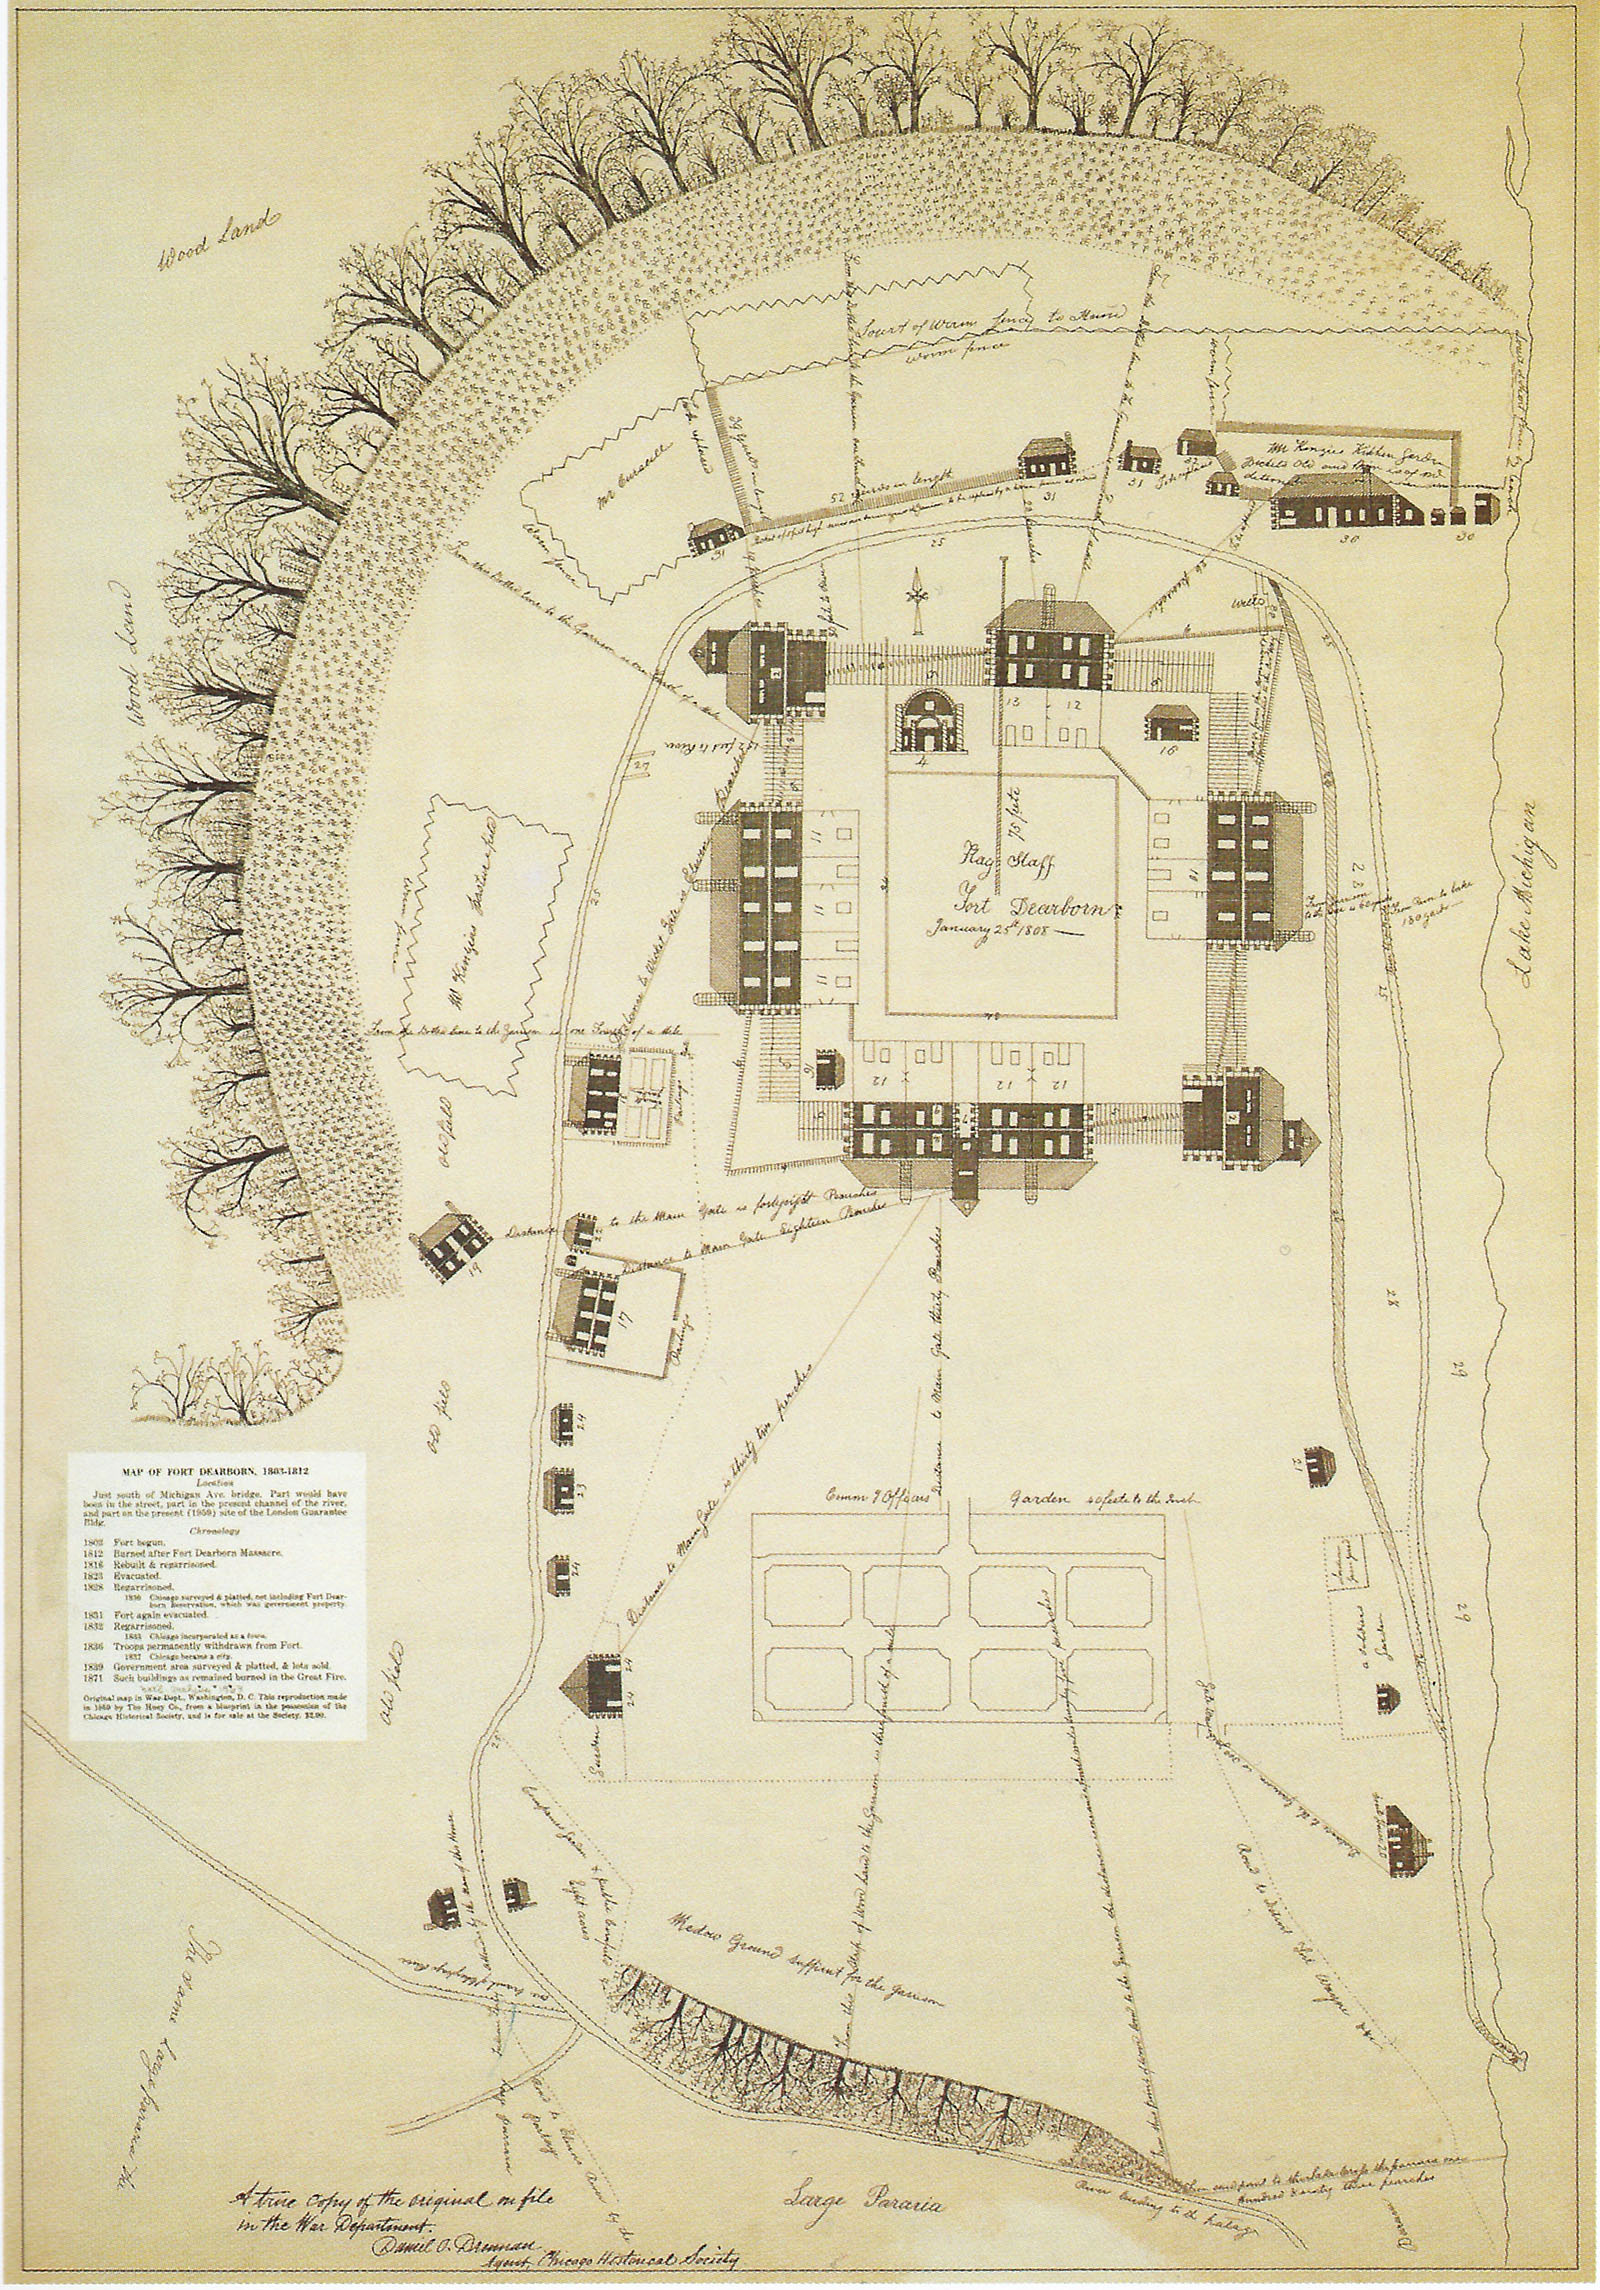 Plan of Fort Dearborn